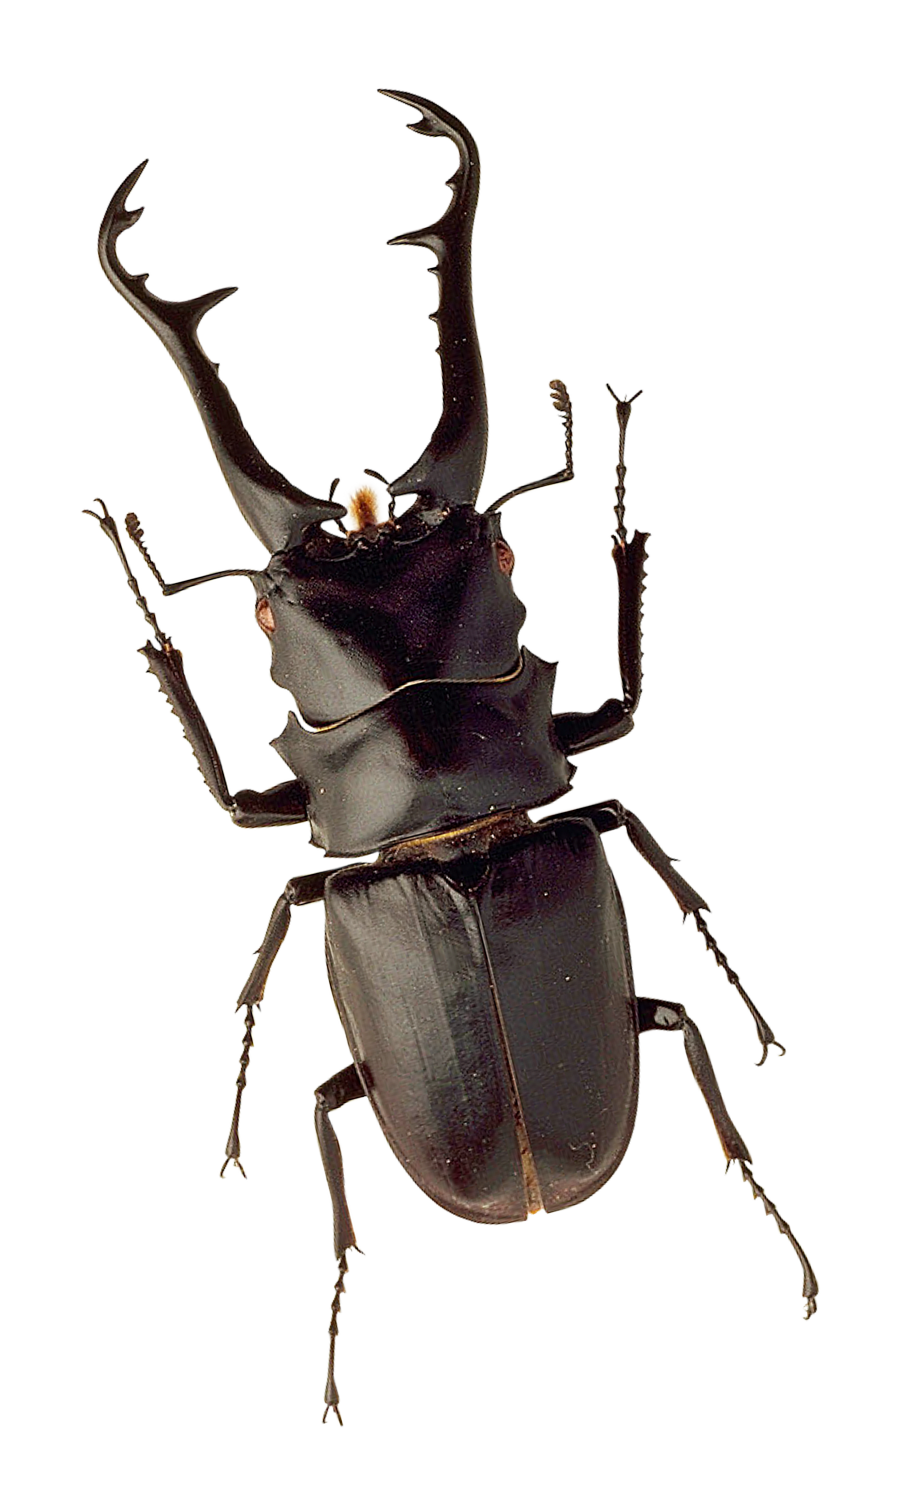 Insect PNG Transparent Images.